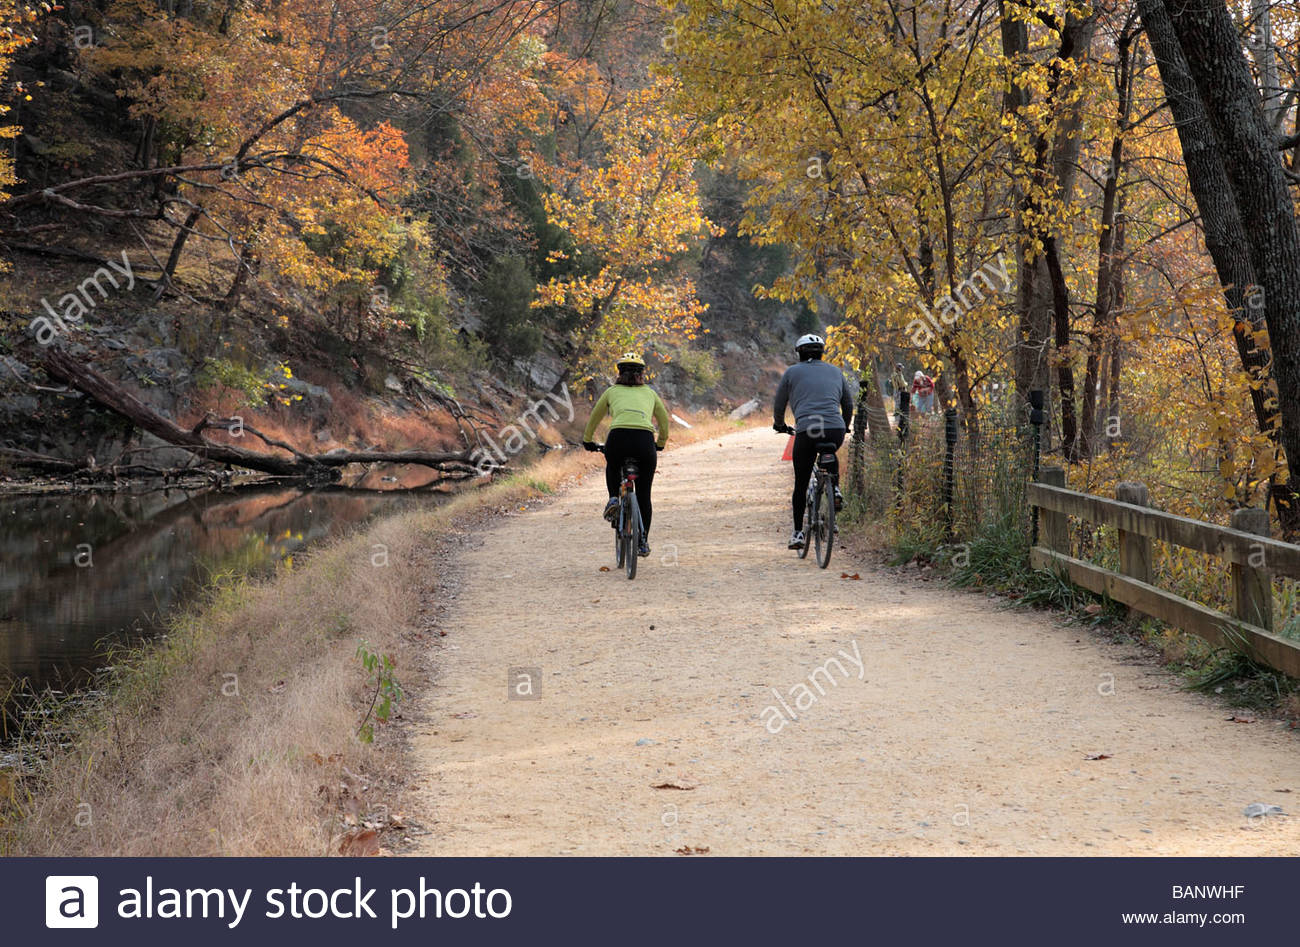 Cyclists and hikers use the towpath on the C&O Canal in the Great Falls area. - Stock Image